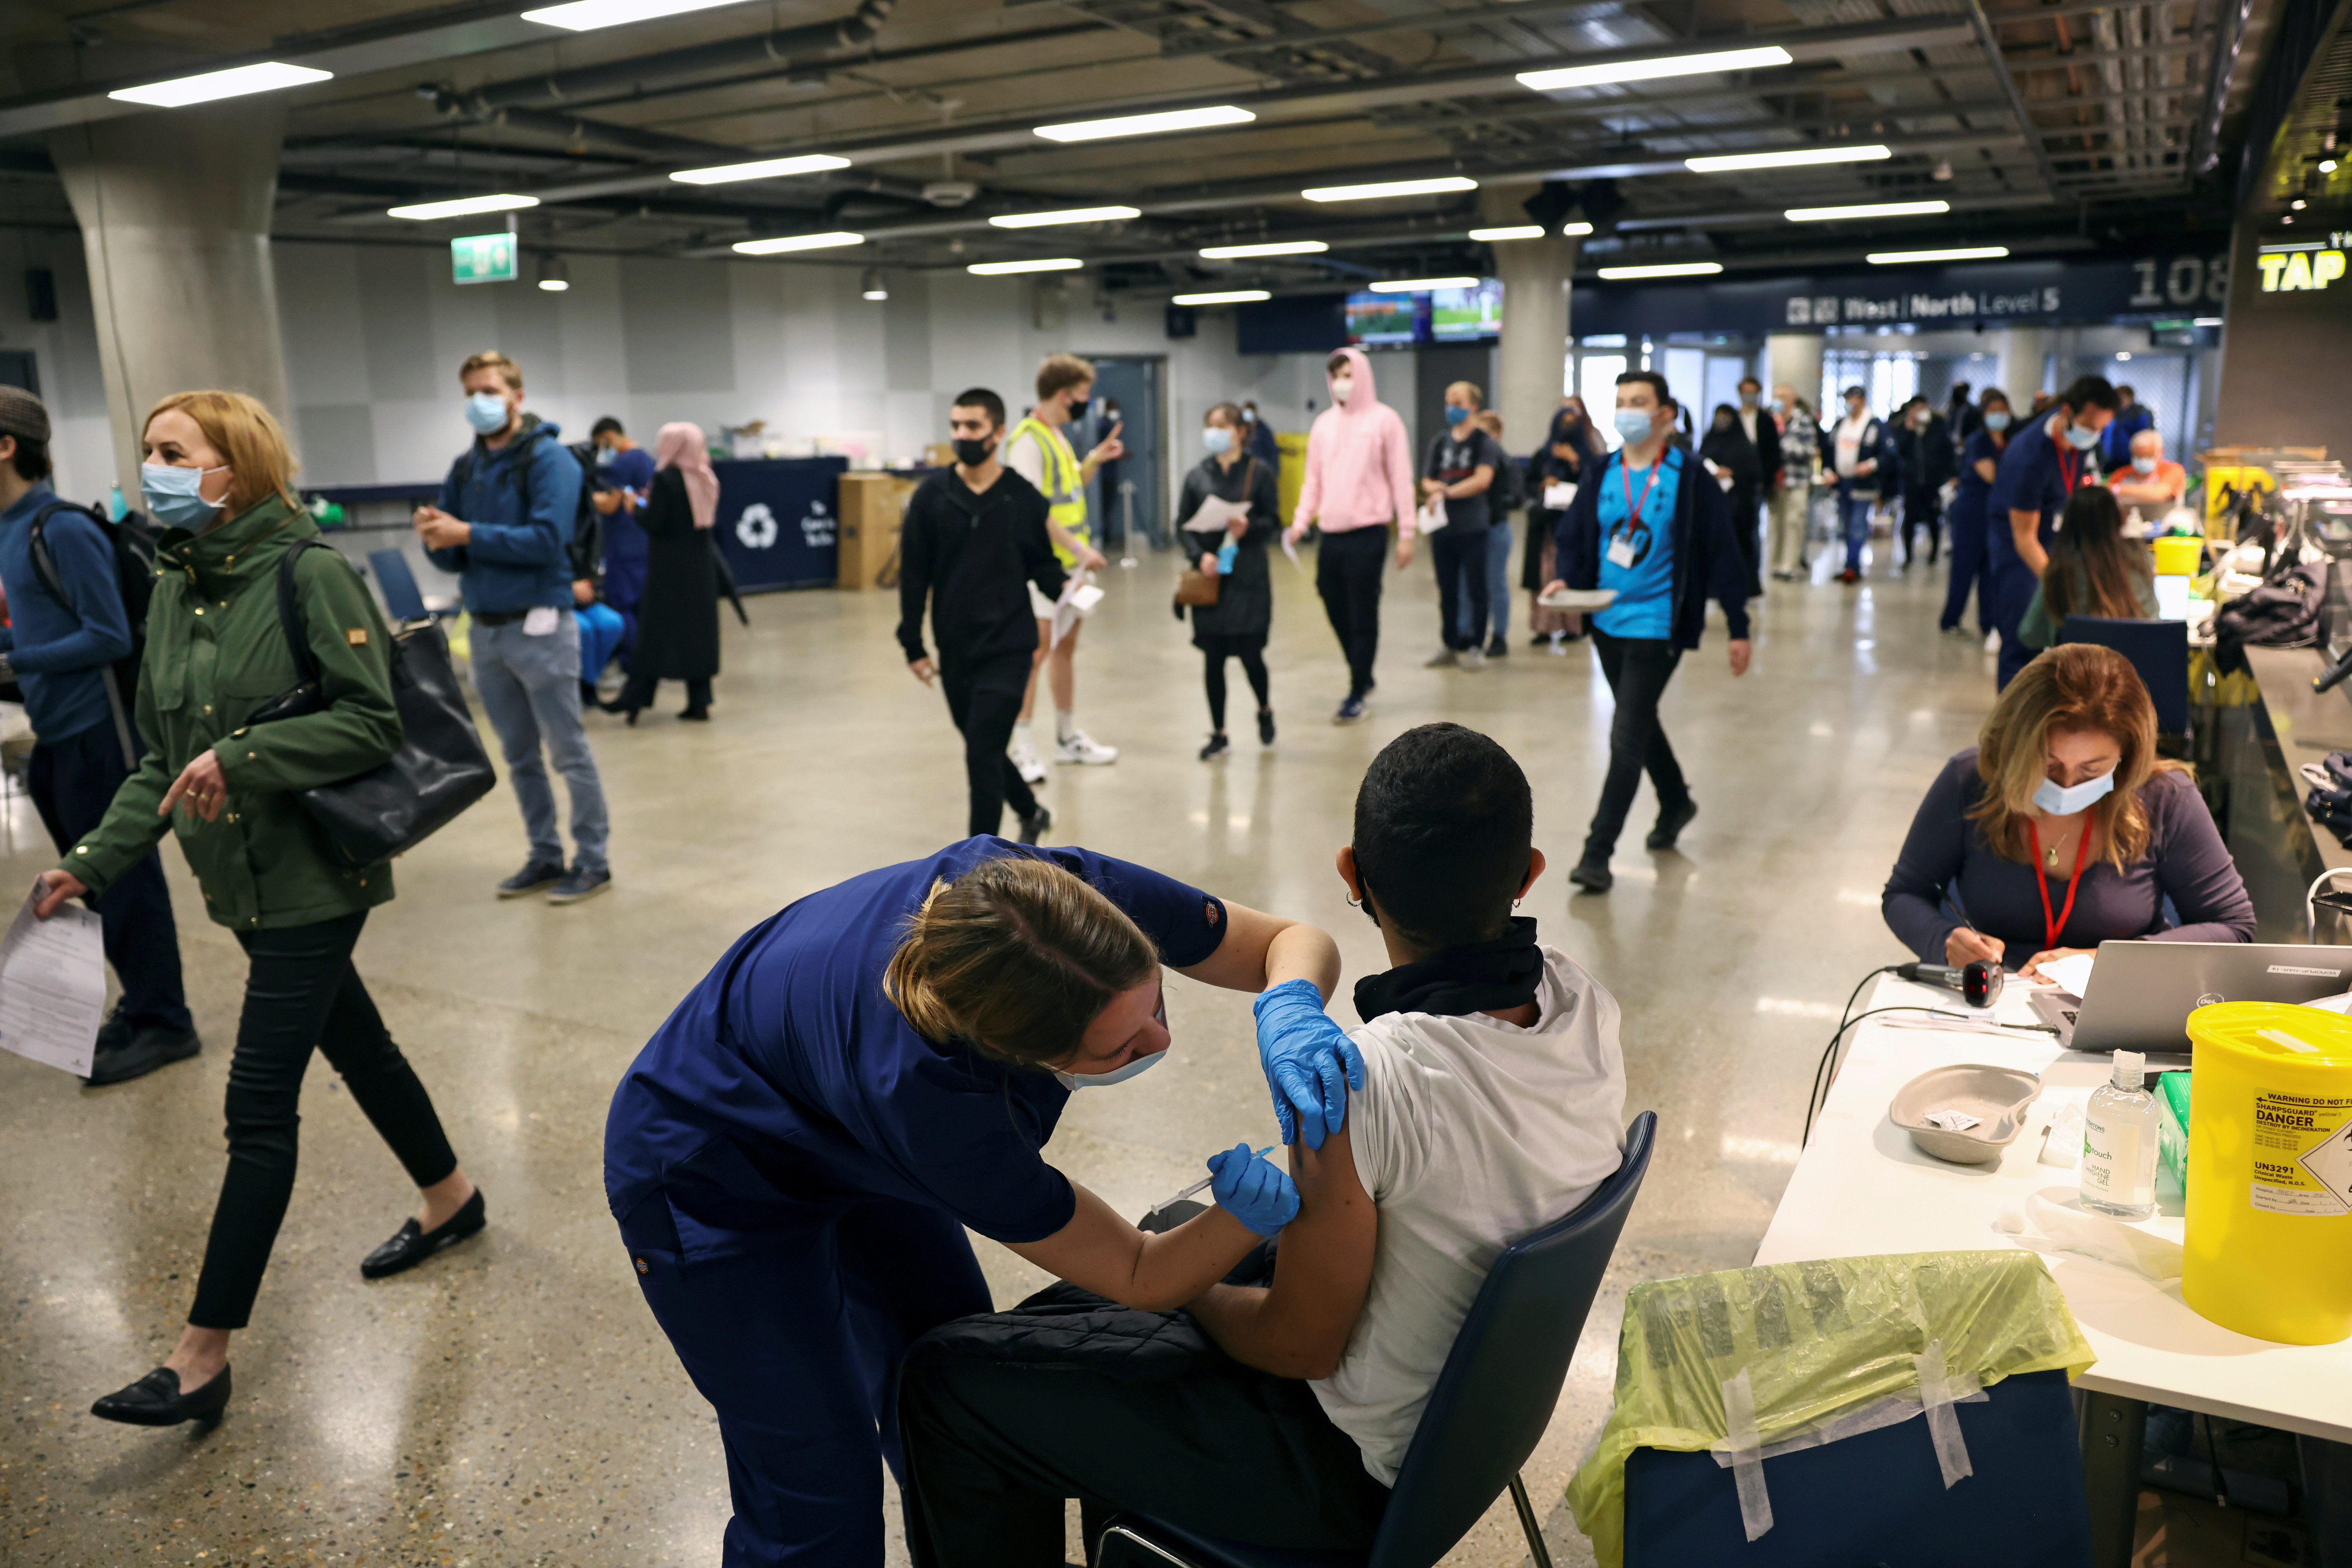 A person receives a dose of the Pfizer BioNTech COVID-19 vaccine at a mass vaccination centre for those aged 18 and over at the Tottenham Hotspur Stadium, amid the coronavirus disease (COVID-19) pandemic, in London, Britain, June 20, 2021. REUTERS/Henry Nicholls